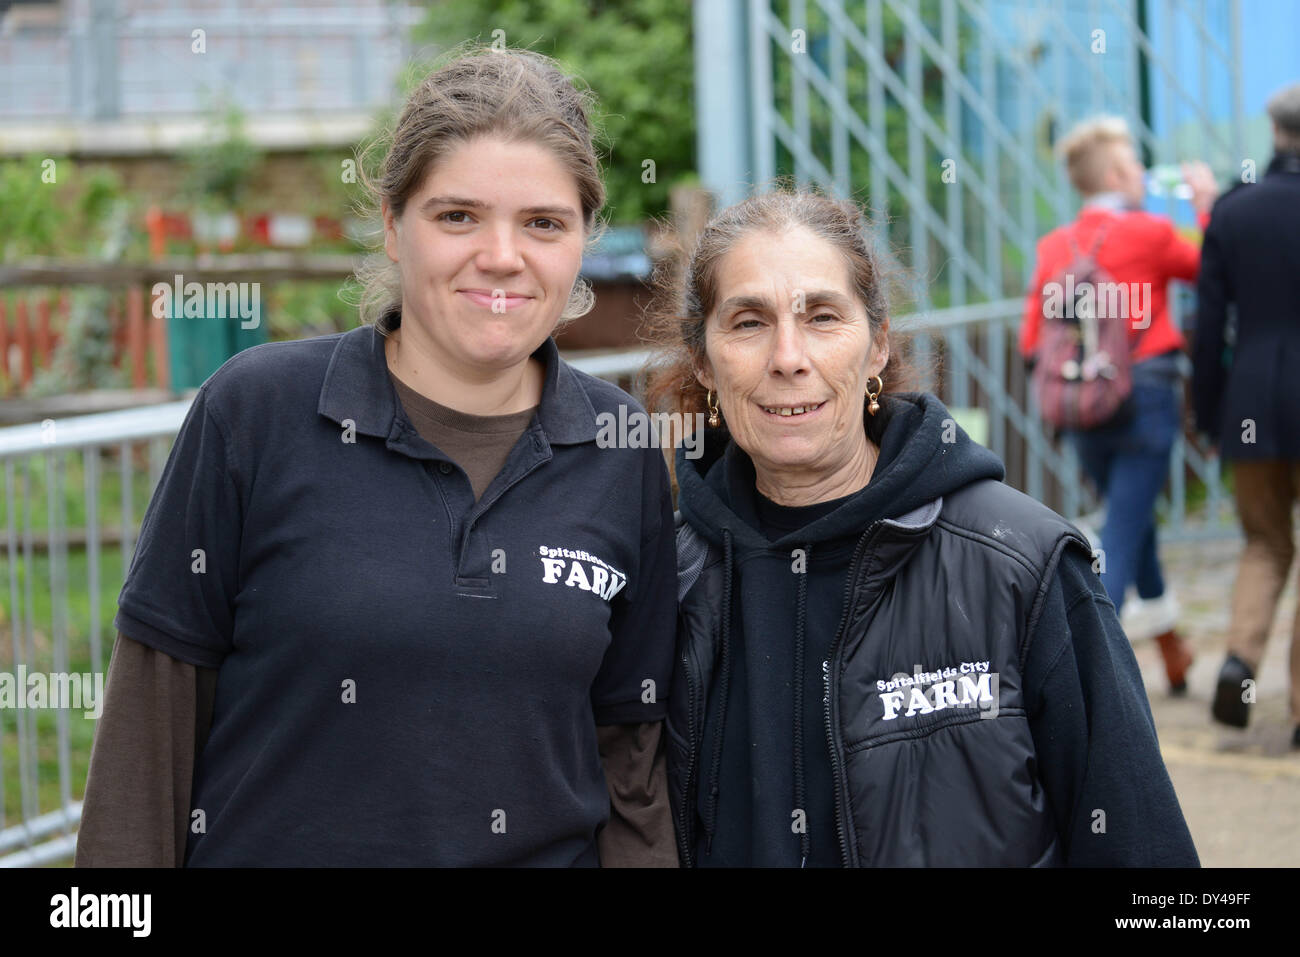 London, UK. 06th Apr, 2014. Staffs at The Oxford and Cambridge 'Goat Race' at the Spitalfields City Farm in London. Credit:  See Li/Alamy Live News - Stock Image